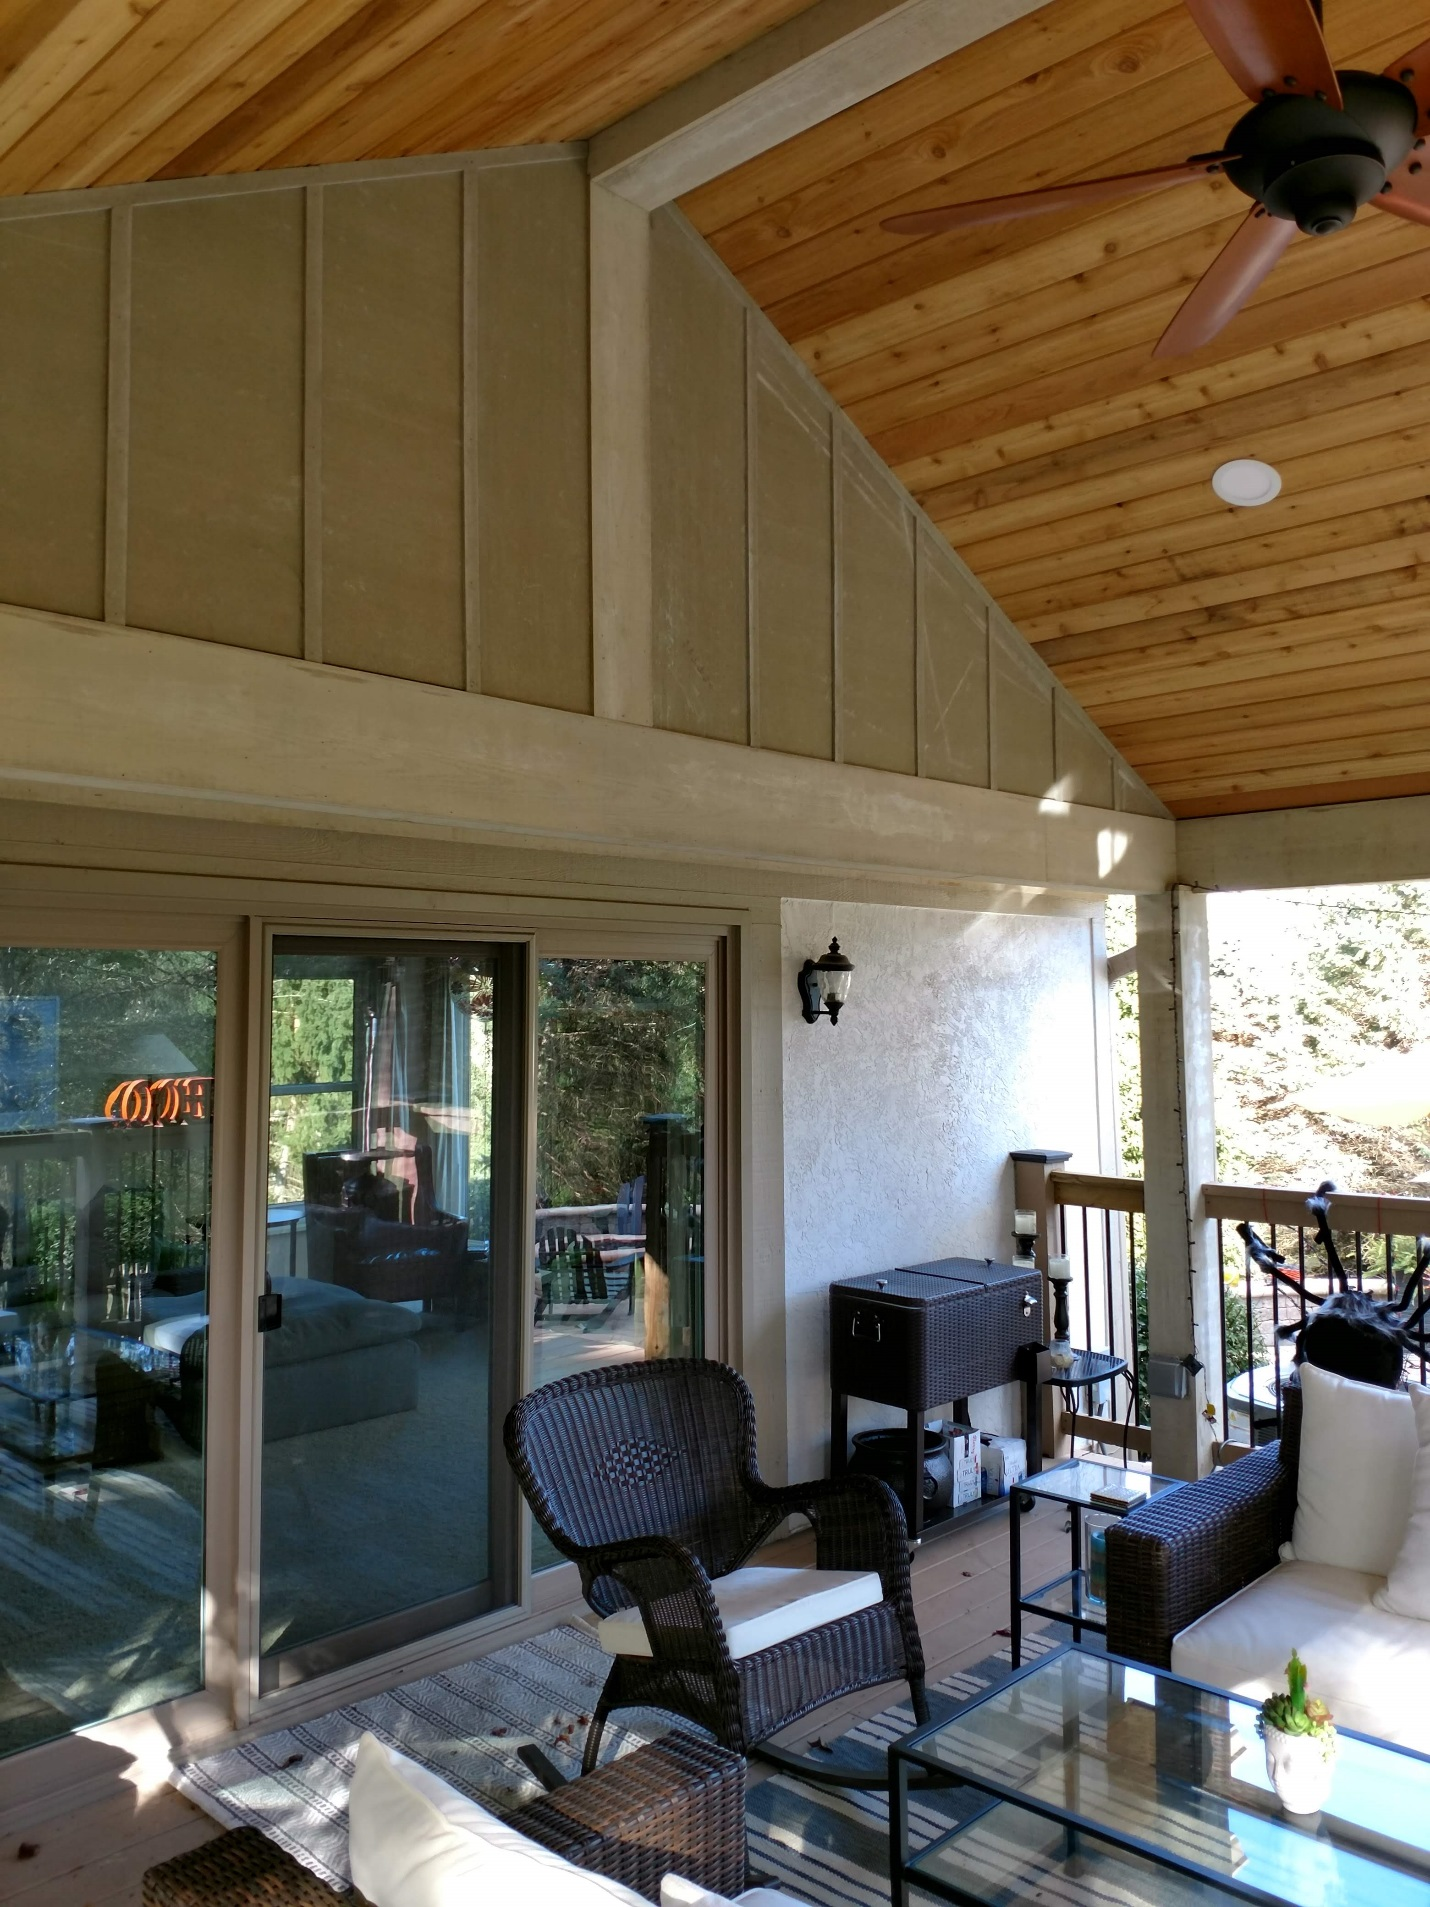 This-open-porch-interior-boats-Hardie-siding-and-Boral-trim